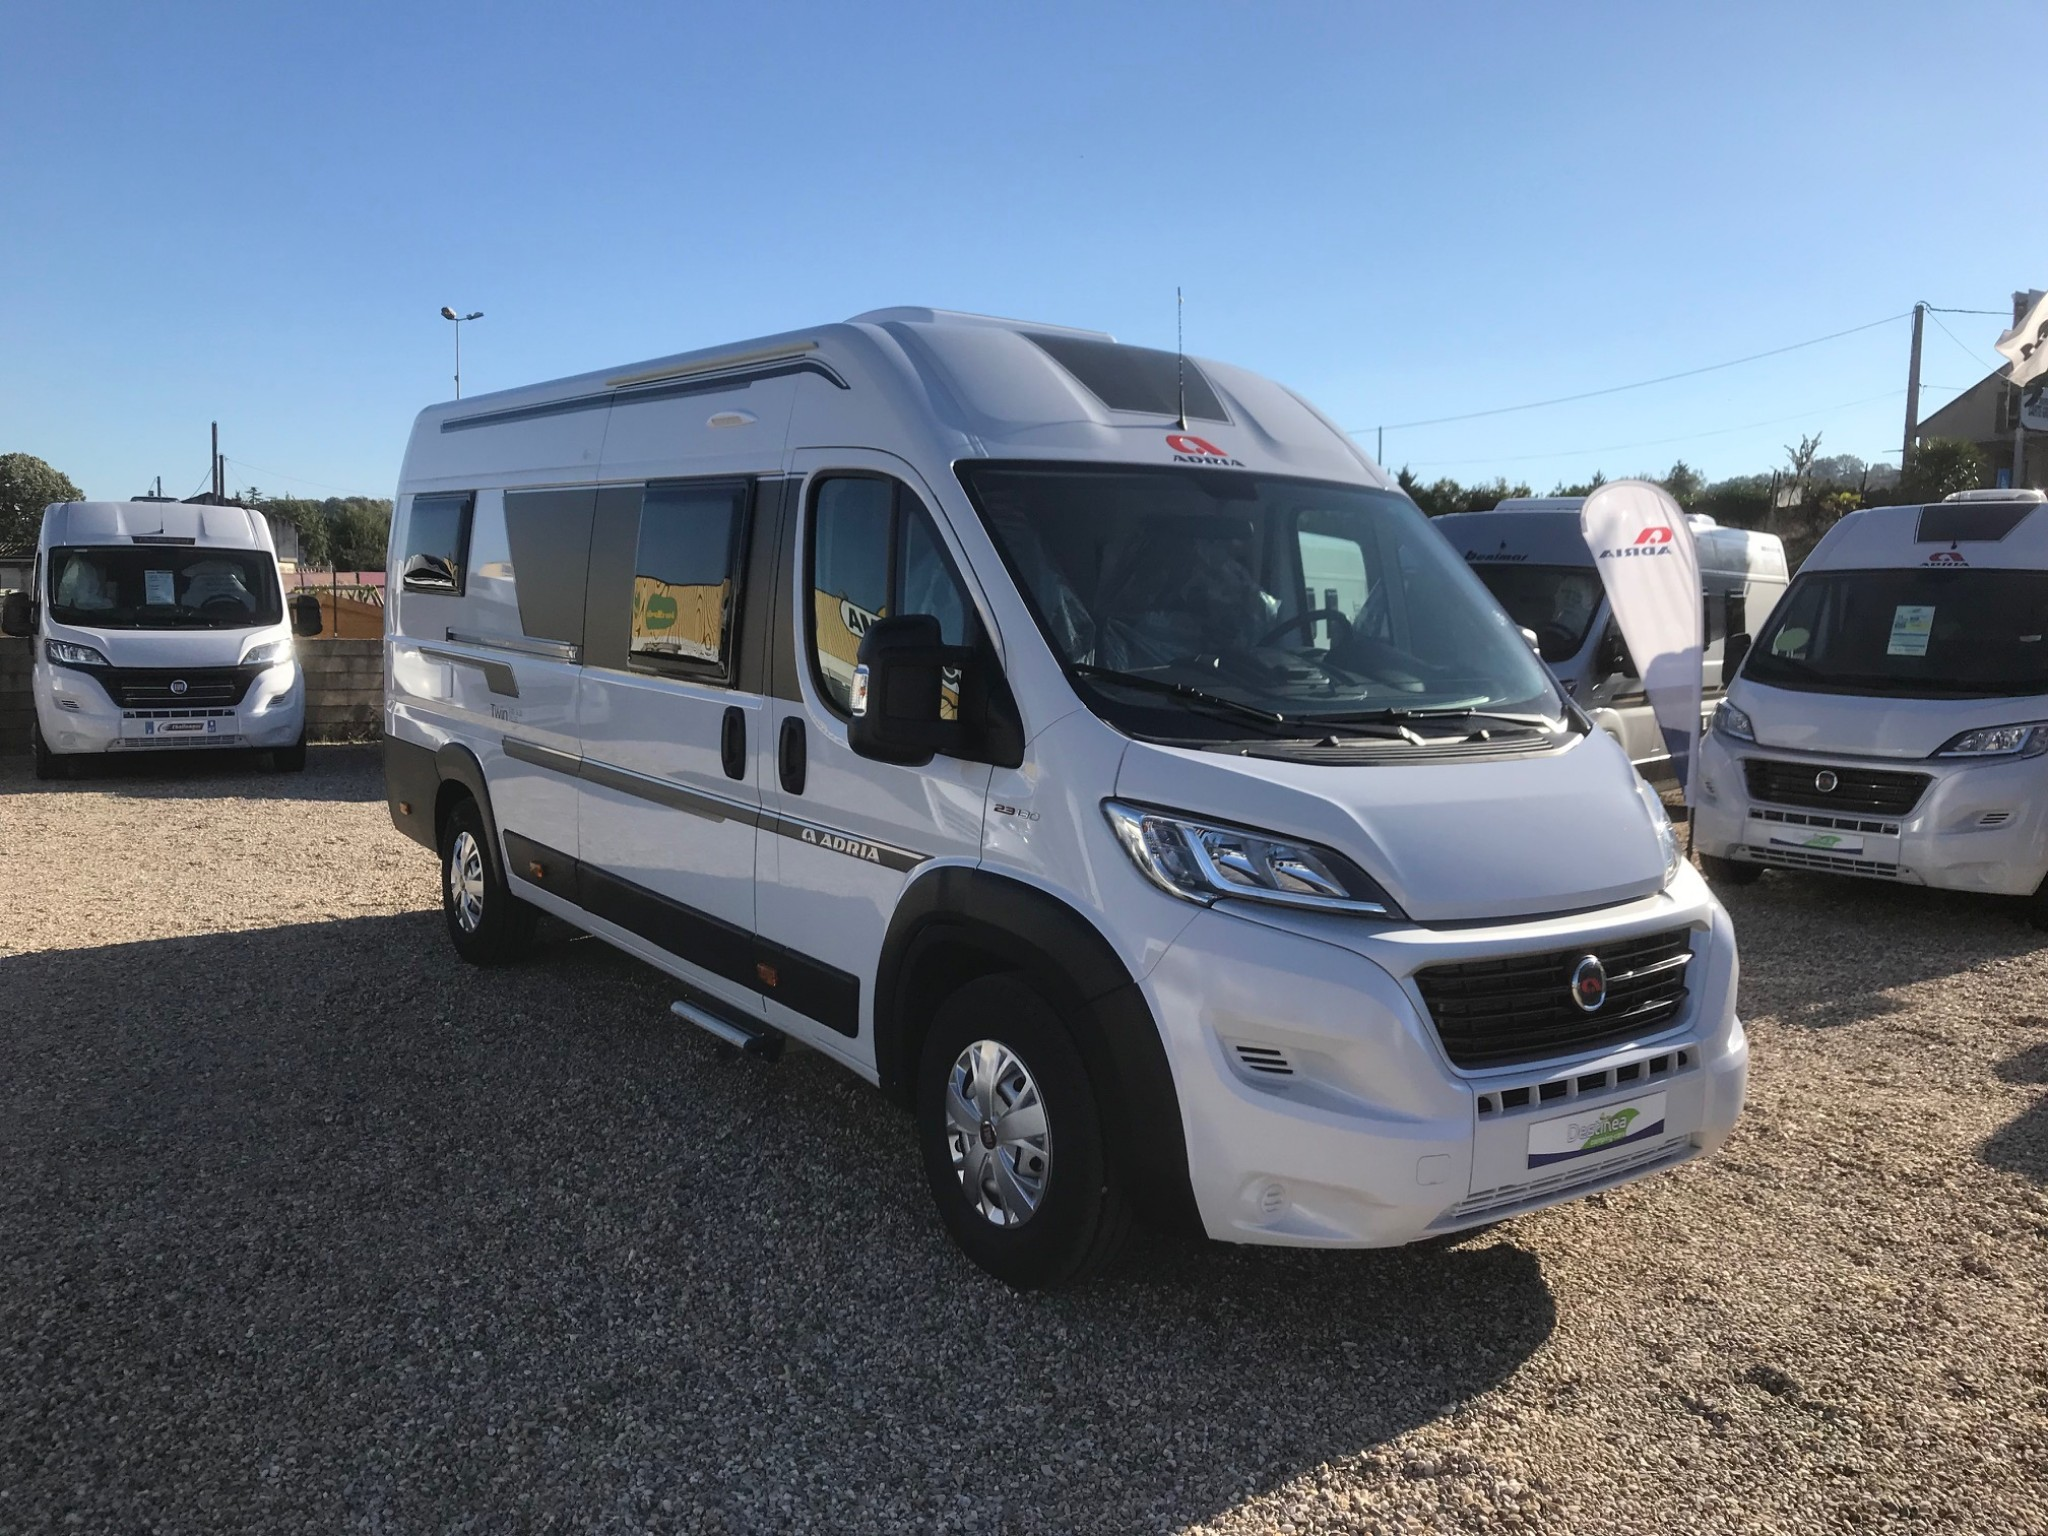 Camping-car ADRIA TWIN + 640 SLB